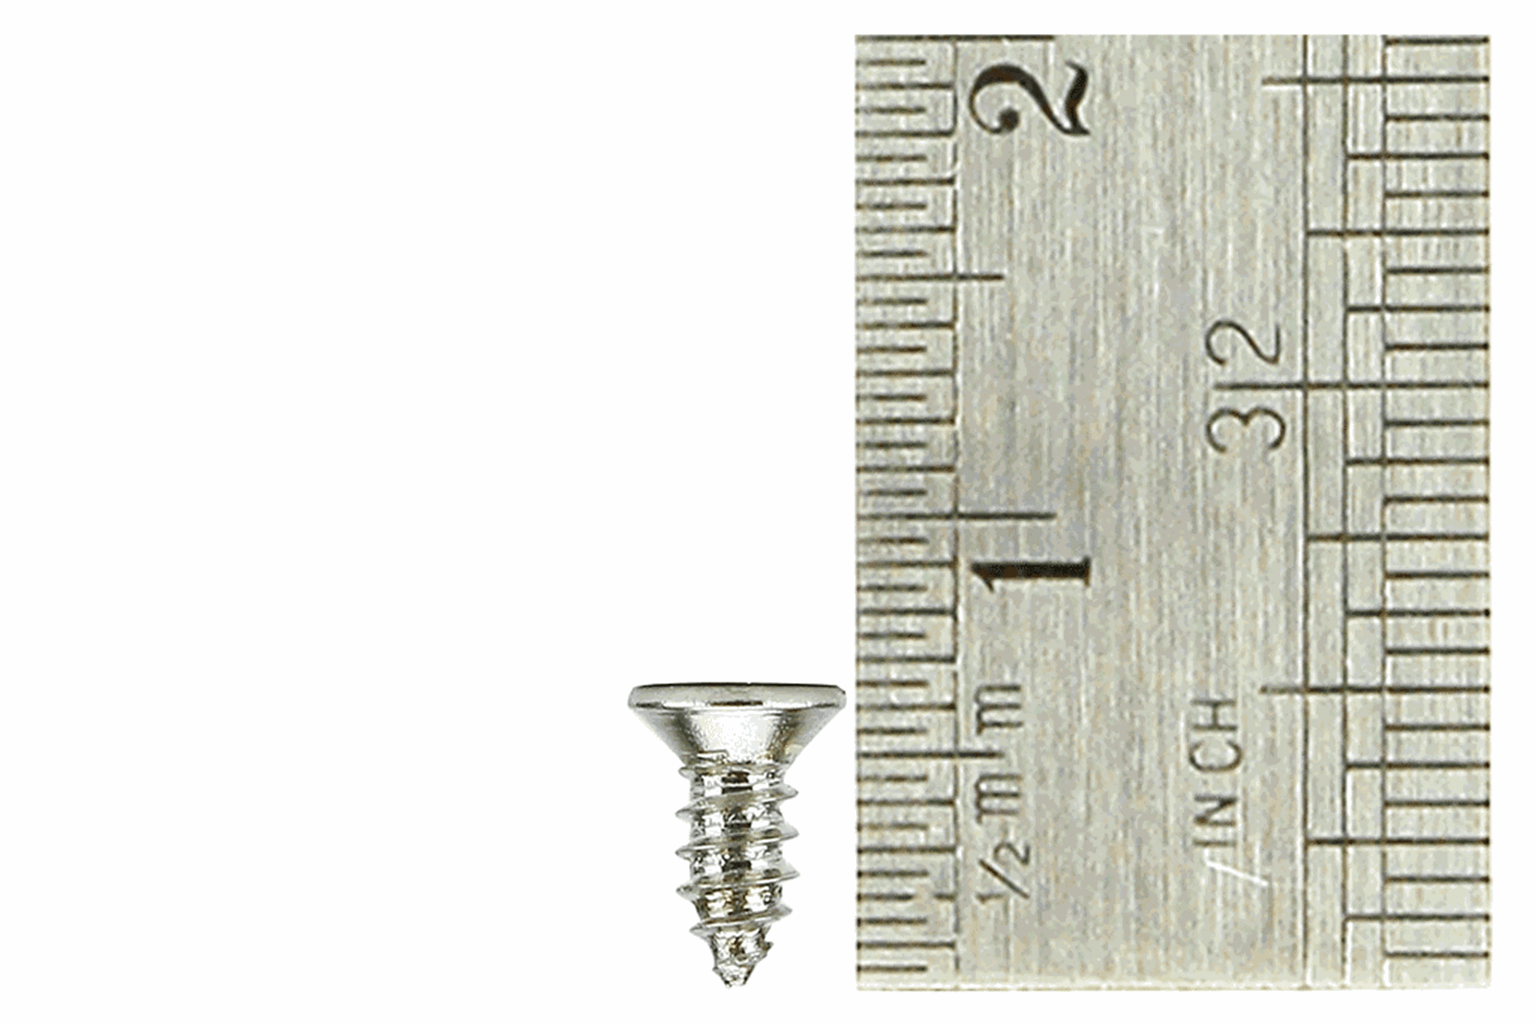 Countersunk Screws 2 x 6mm (60 Pieces)